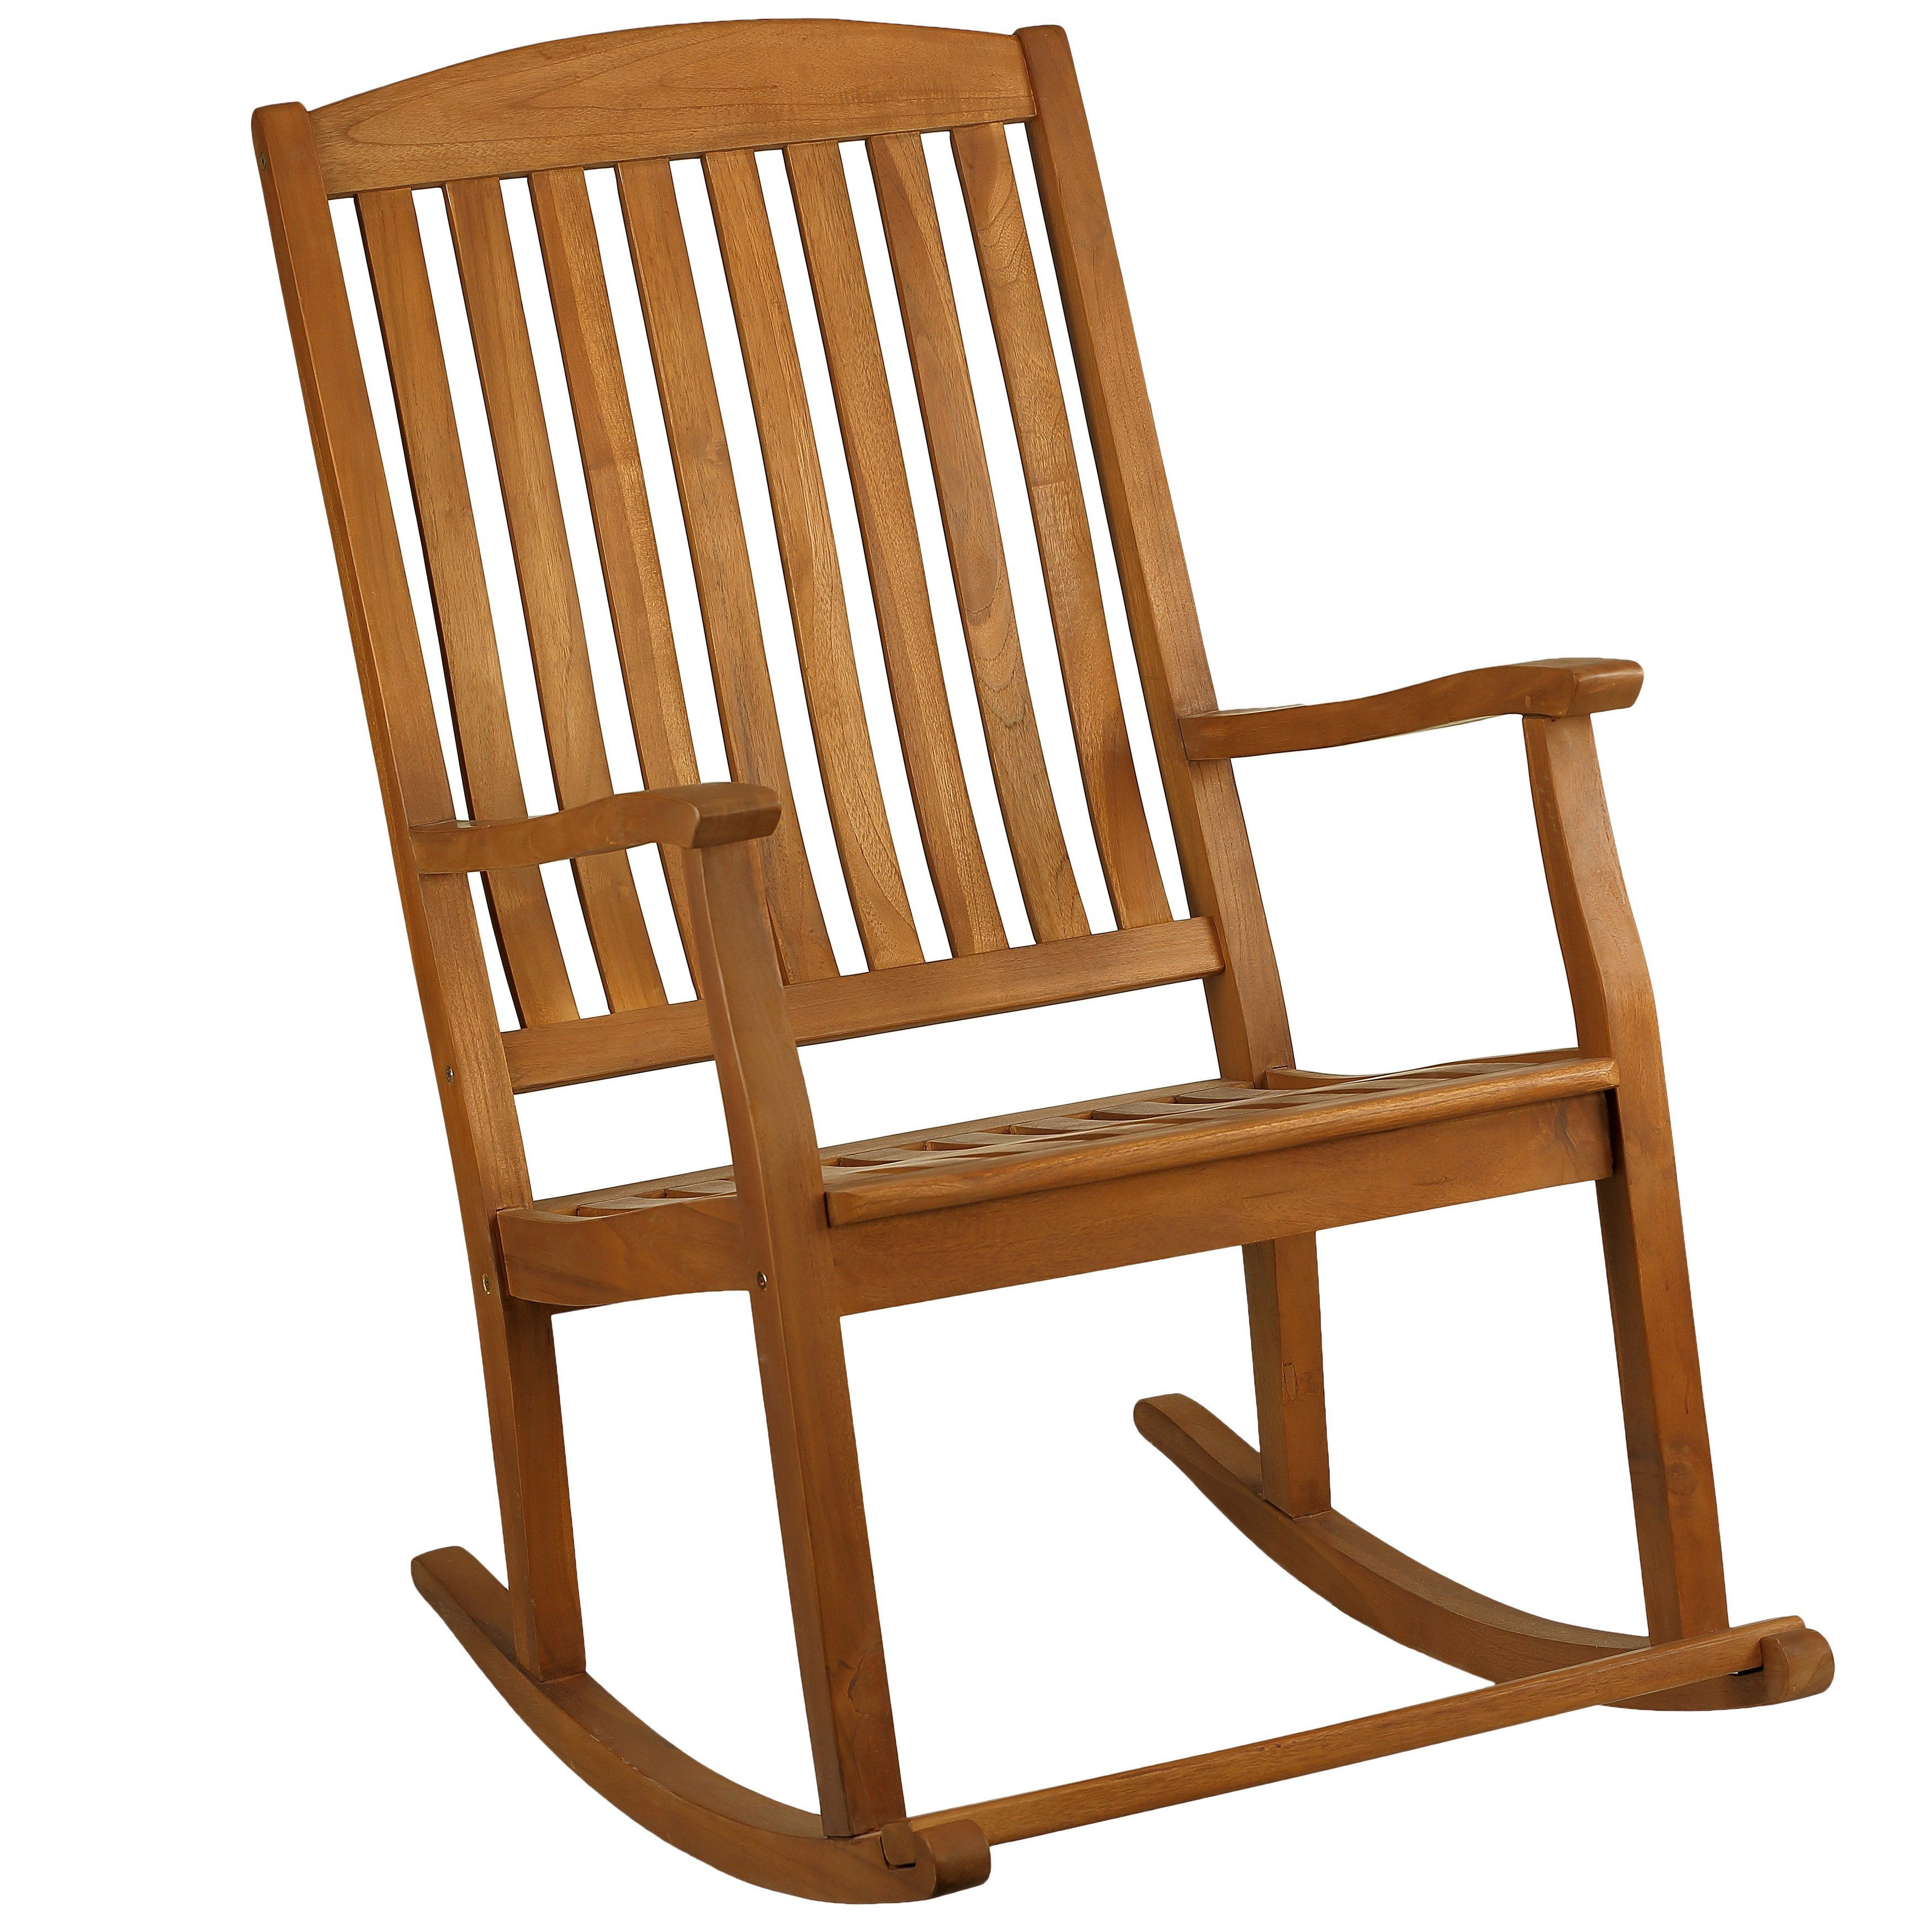 Bare decor large rocking chair in teak wood indoor or